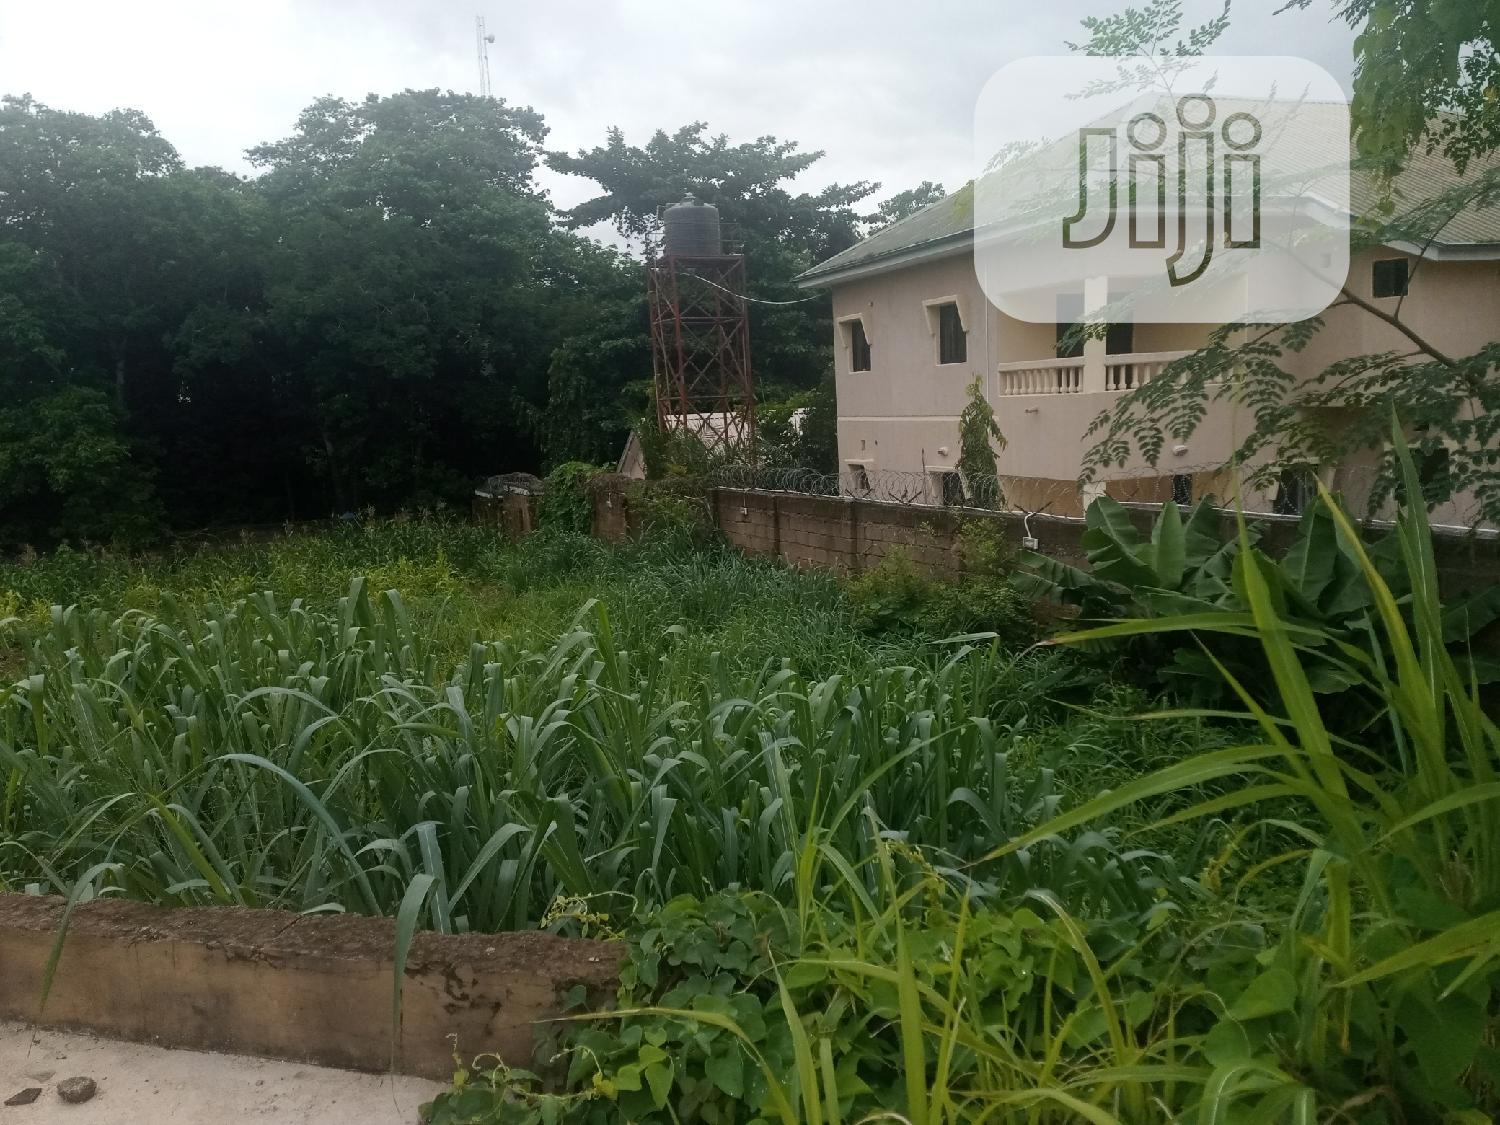 3,041sqm Residential Land for Sale at Garki, C of O | Land & Plots For Sale for sale in Garki 2, Abuja (FCT) State, Nigeria